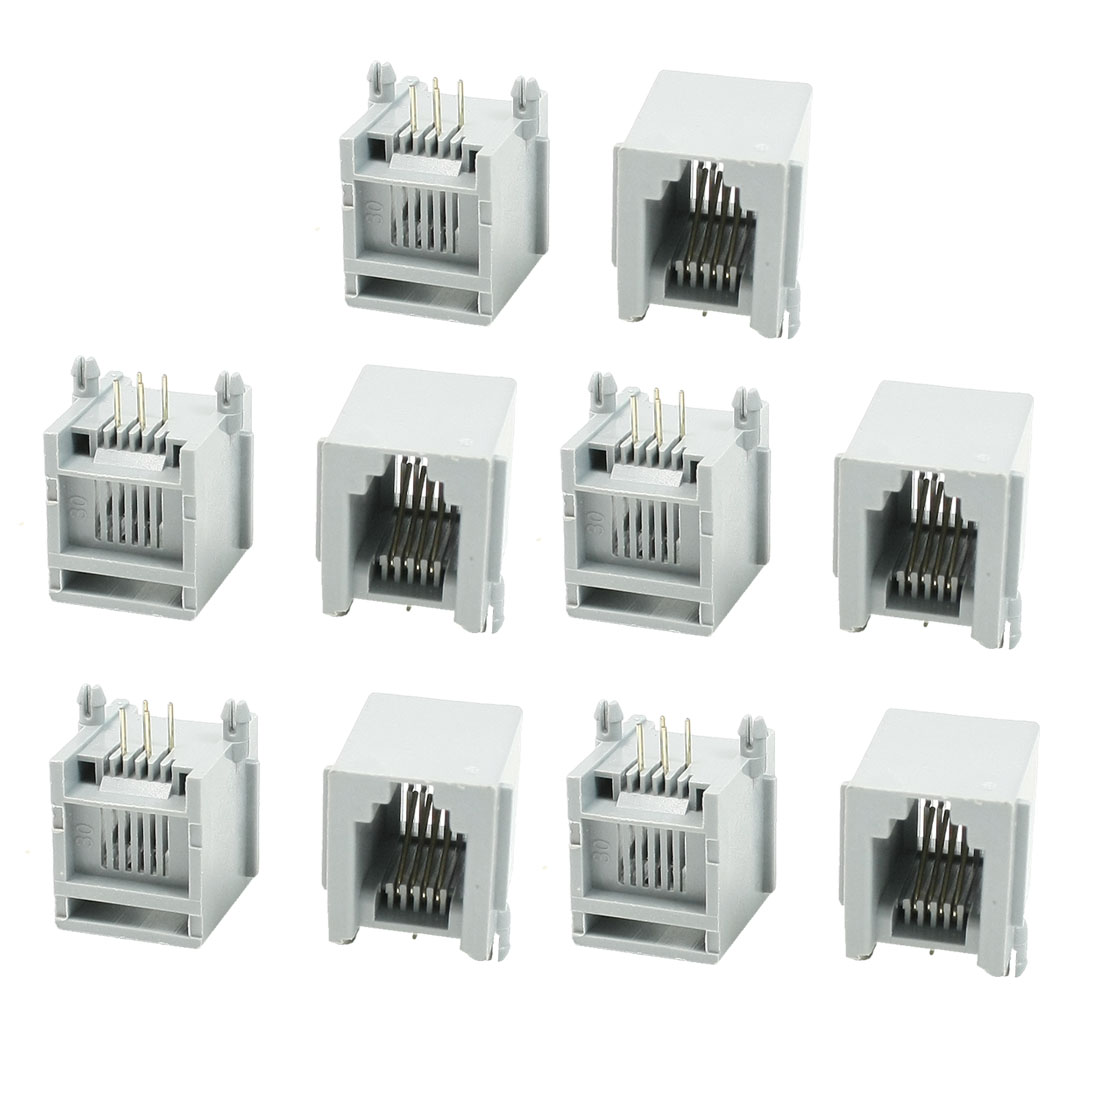 "10 Pcs RJ11 6P4C PCB Jacks Connectors Gray Ports 0.6"" Length for Ethernet"